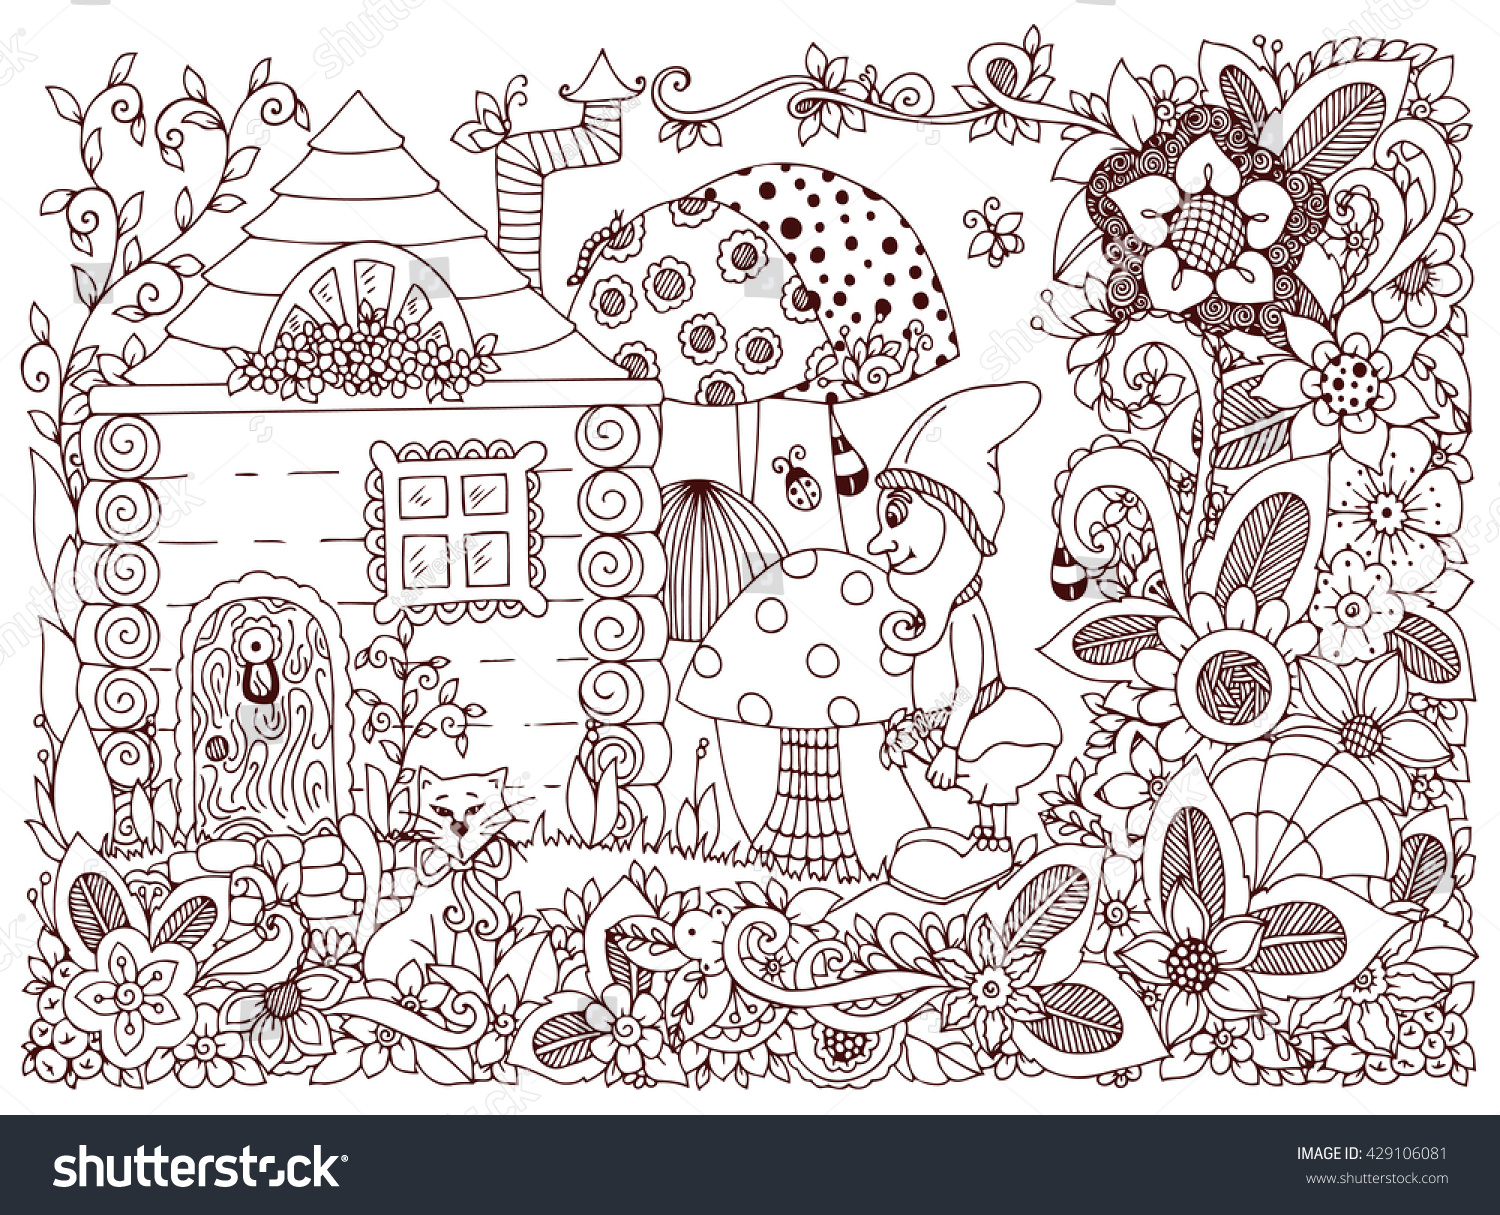 vector illustration zen tangle gnome house stock vector 429106081